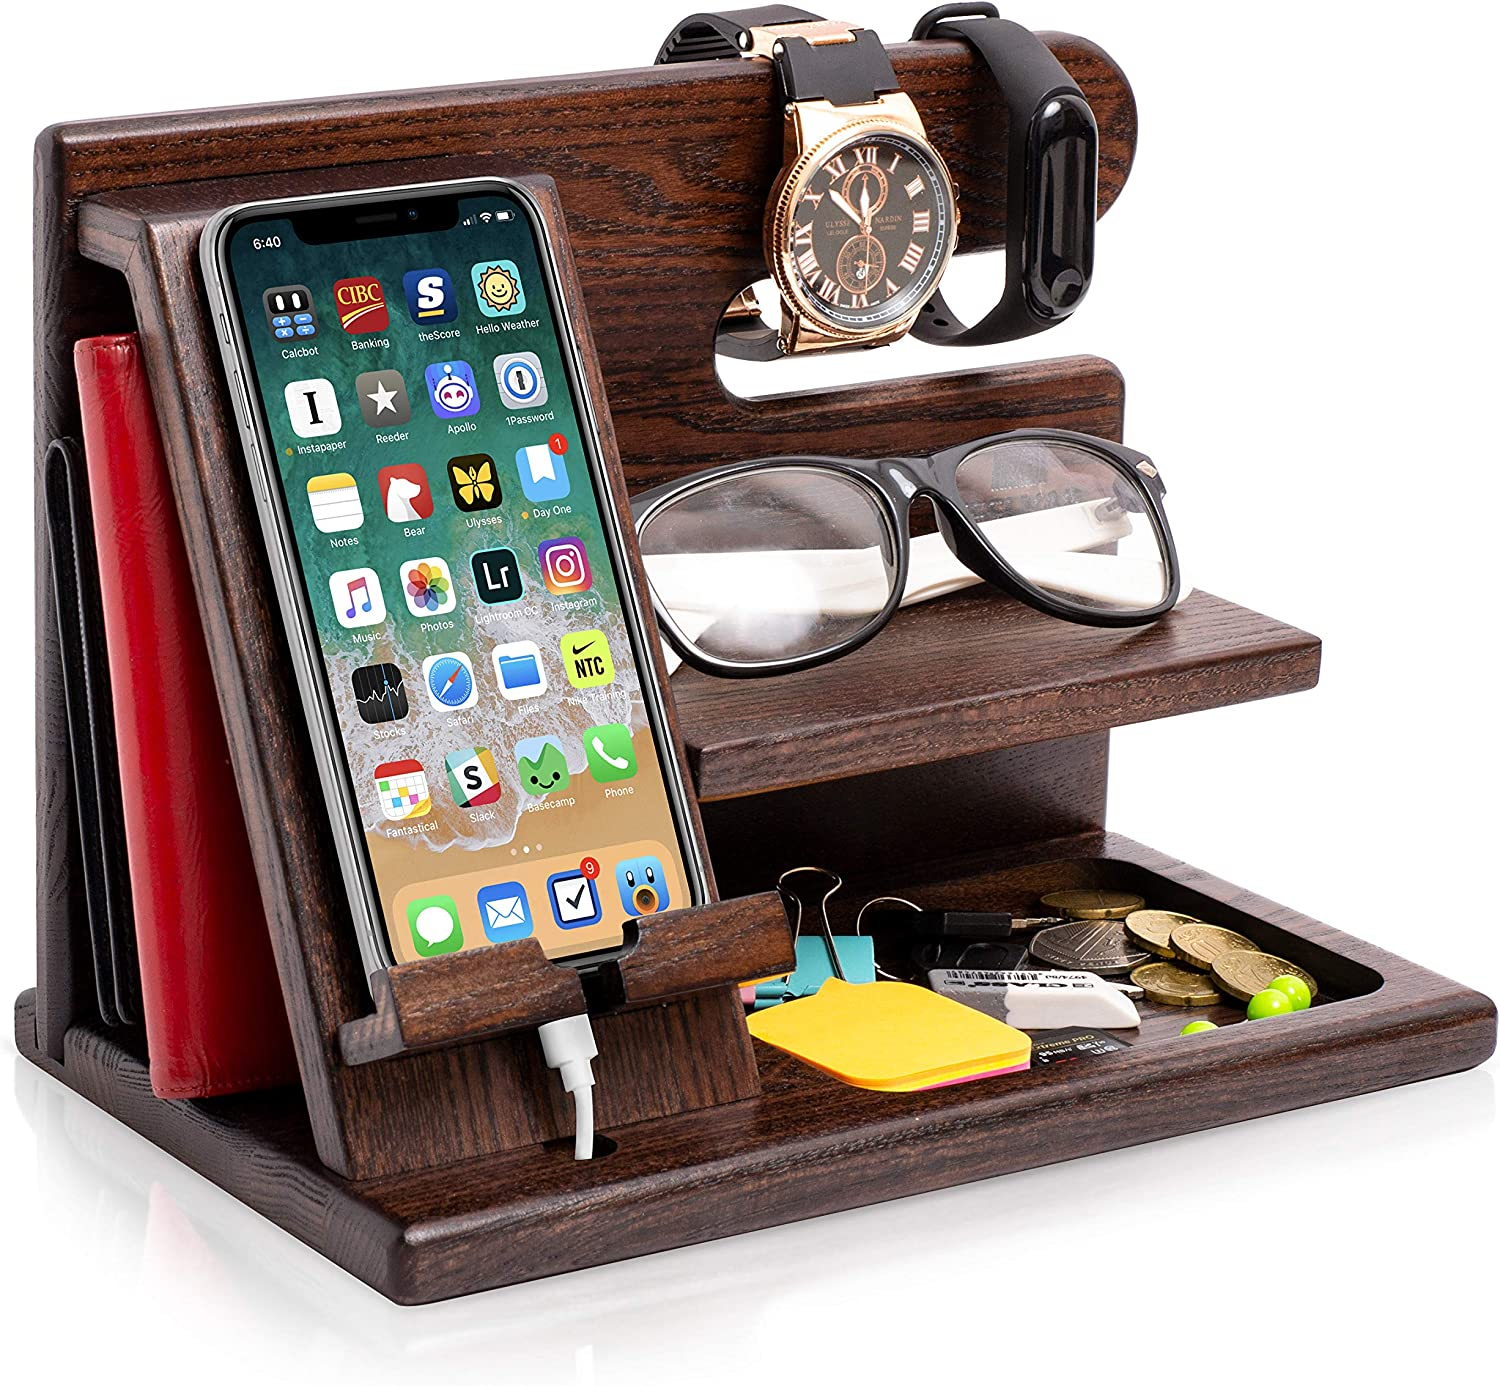 TESLYAR Wood Phone Docking Station